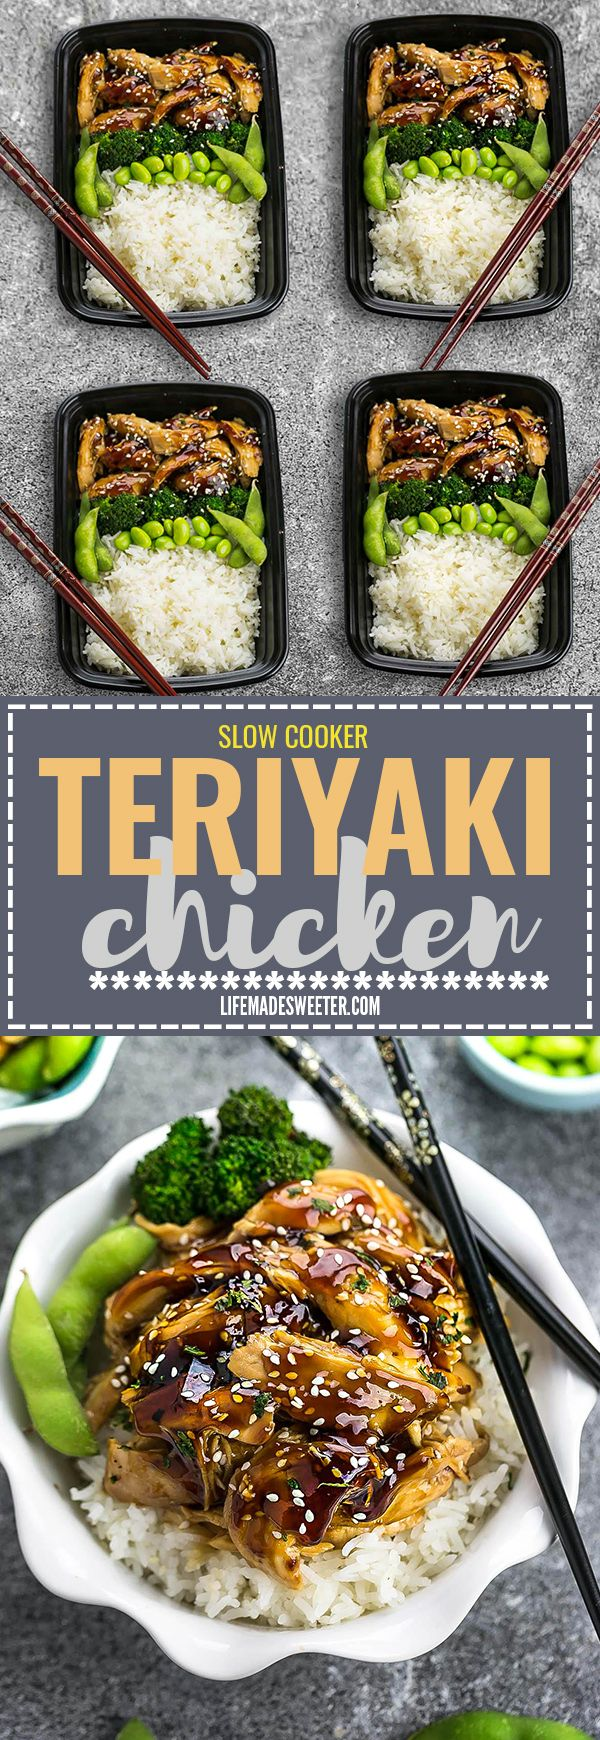 Slow Cooker or Instant Pot Teriyaki Chicken coated in a homemade sweet and savory Teriyaki sauce that is even better than your local Japanese takeout restaurant! Best of all, it's full of authentic flavors and super easy to make with just 10 minutes of prep time. Skip the takeout menu! This is so much better and healthier! Weekly meal prep or leftovers are great for lunch bowls or lunch boxes for work or school.